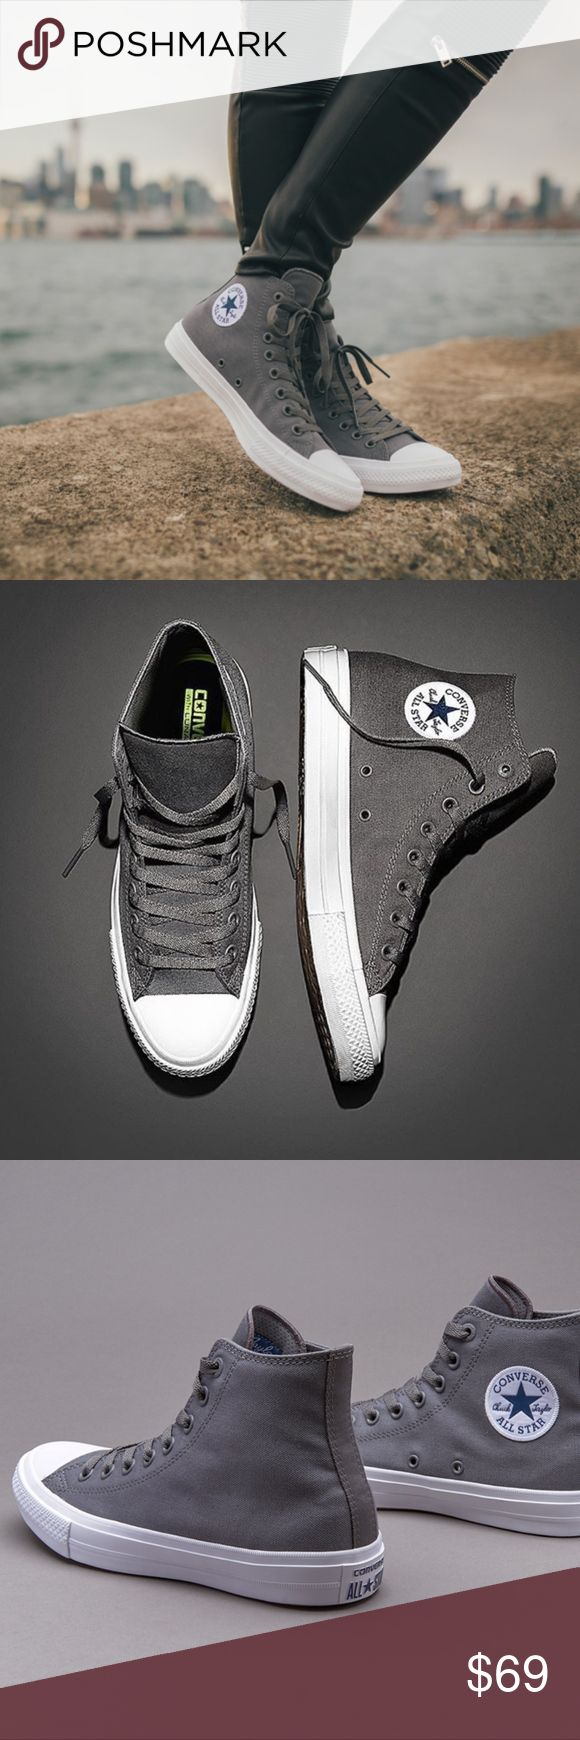 NWT Converse Chuck II 2 Hi Top Gray Nike Lunarlon - New in box! - Great neutral shoe for everyday use! - Converse Chuck Taylor All Star II with Nike Lunarlon insoles for extra comfort - Size: Women's size listed - Fit: True to size - Grey Gray White Converse Shoes Athletic Shoes